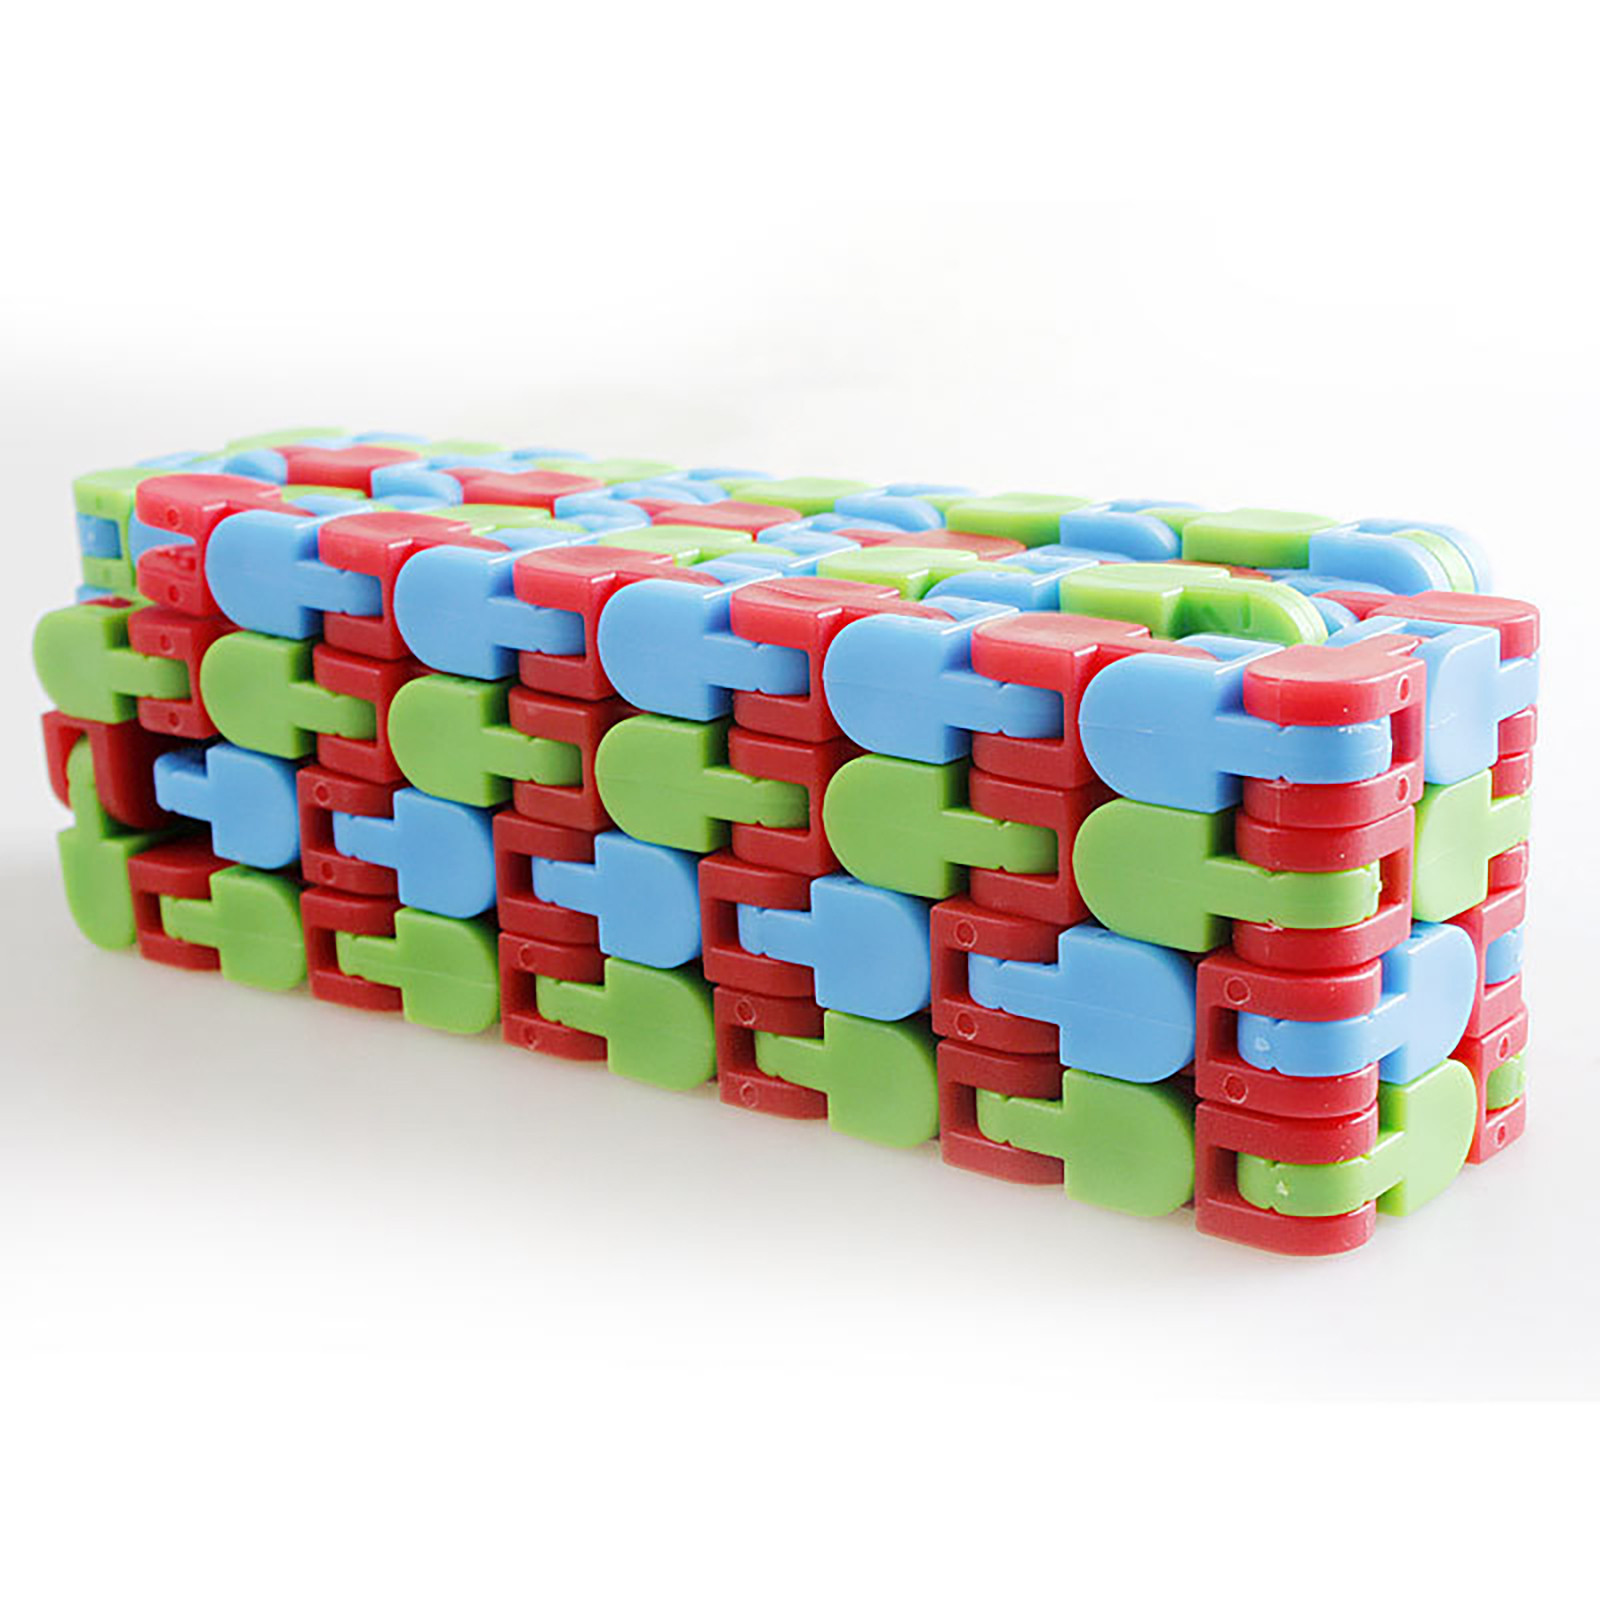 Toys Puzzle Tracks Snap Stress Shape Click Wacky Sensory Colorful Kids And Relief-Rotate img5